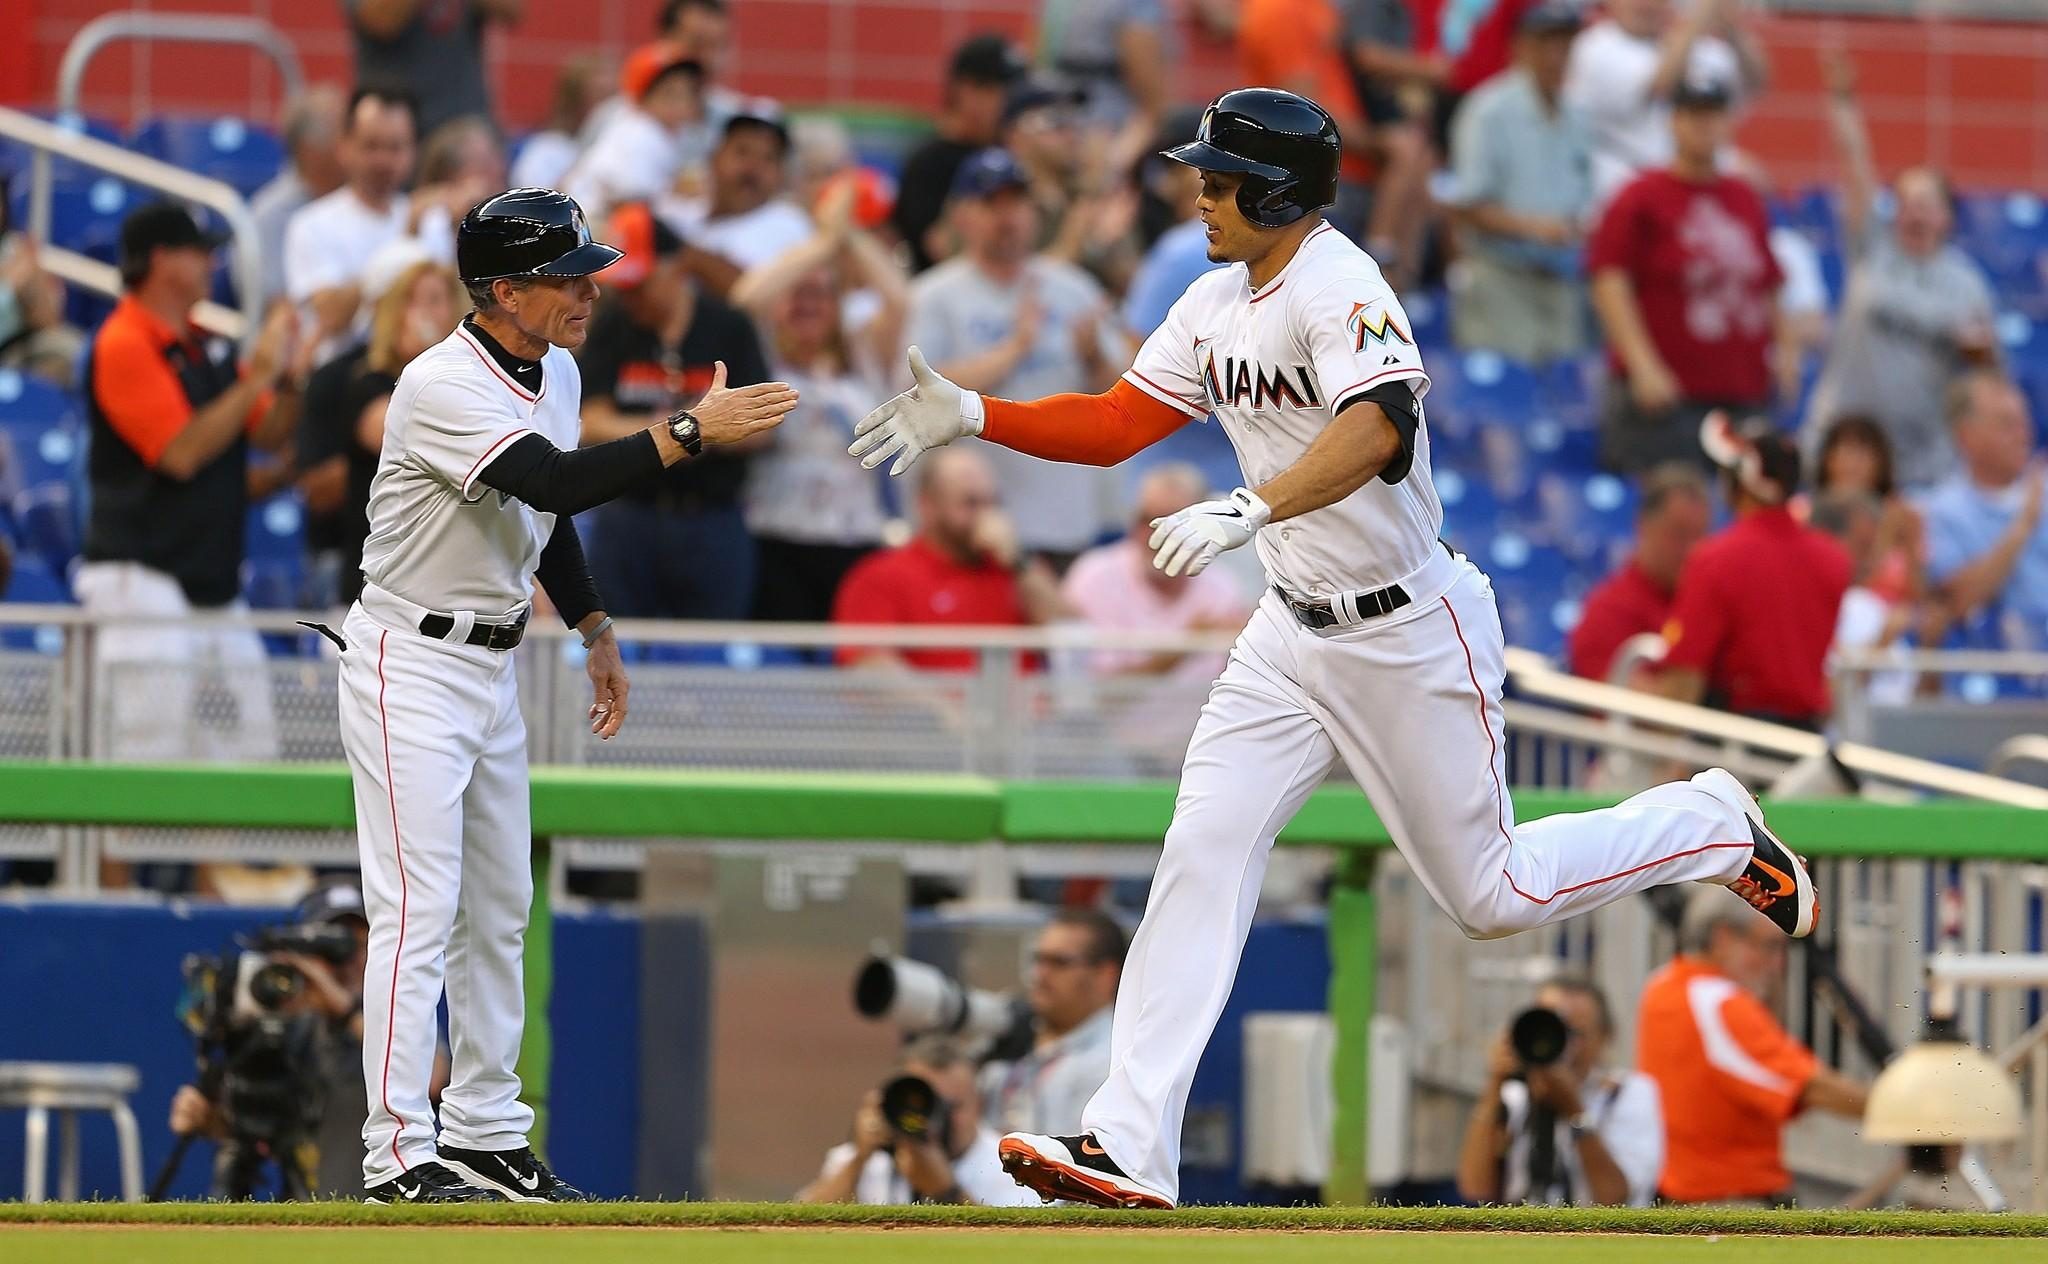 MIAMI, FL - MAY 23: Giancarlo Stanton #27 of the Miami Marlins hits a solo home run during a game against the Milwaukee Brewers at Marlins Park on May 23, 2014 in Miami, Florida.